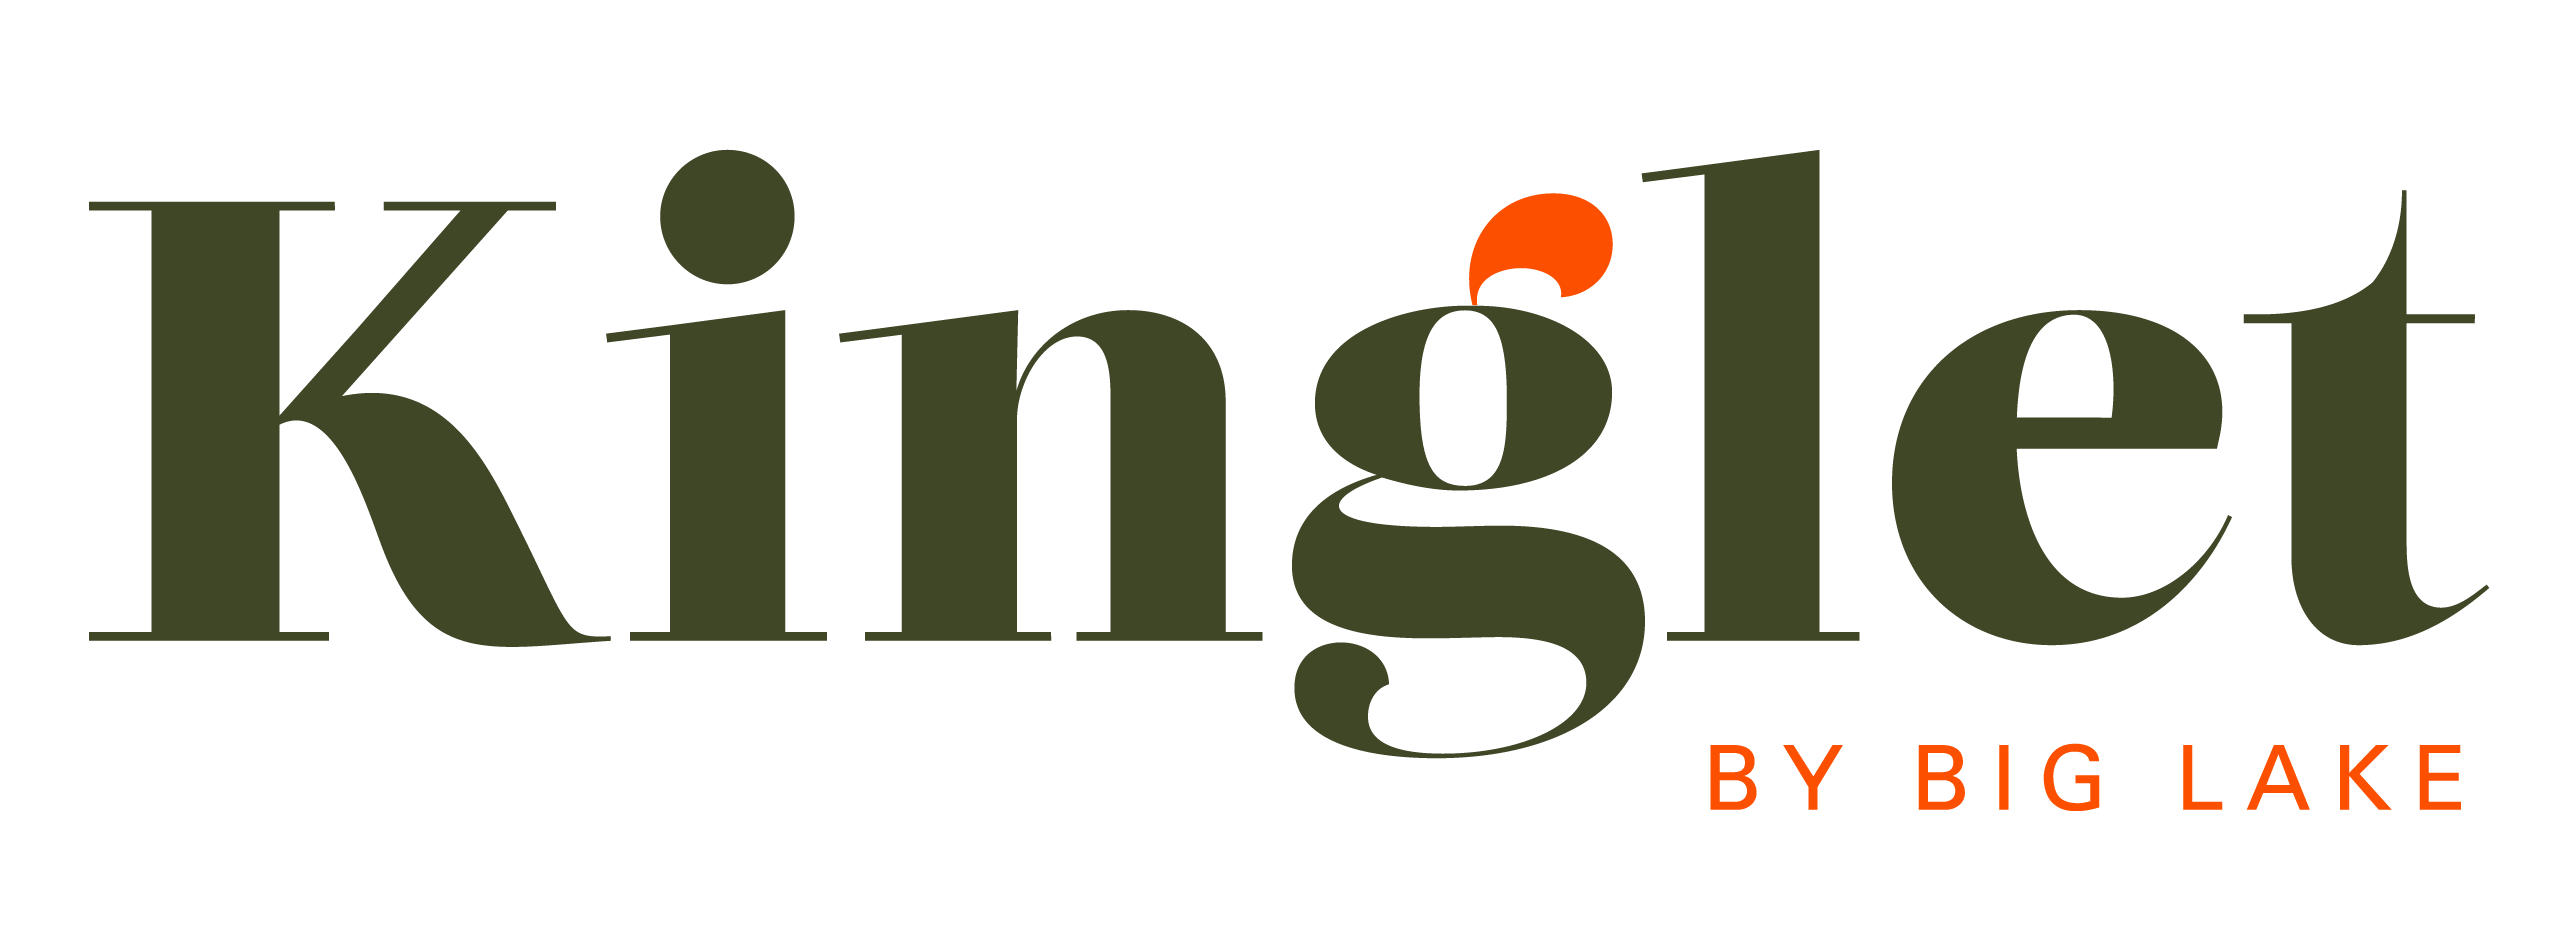 Kinglet by Big Lake Logo